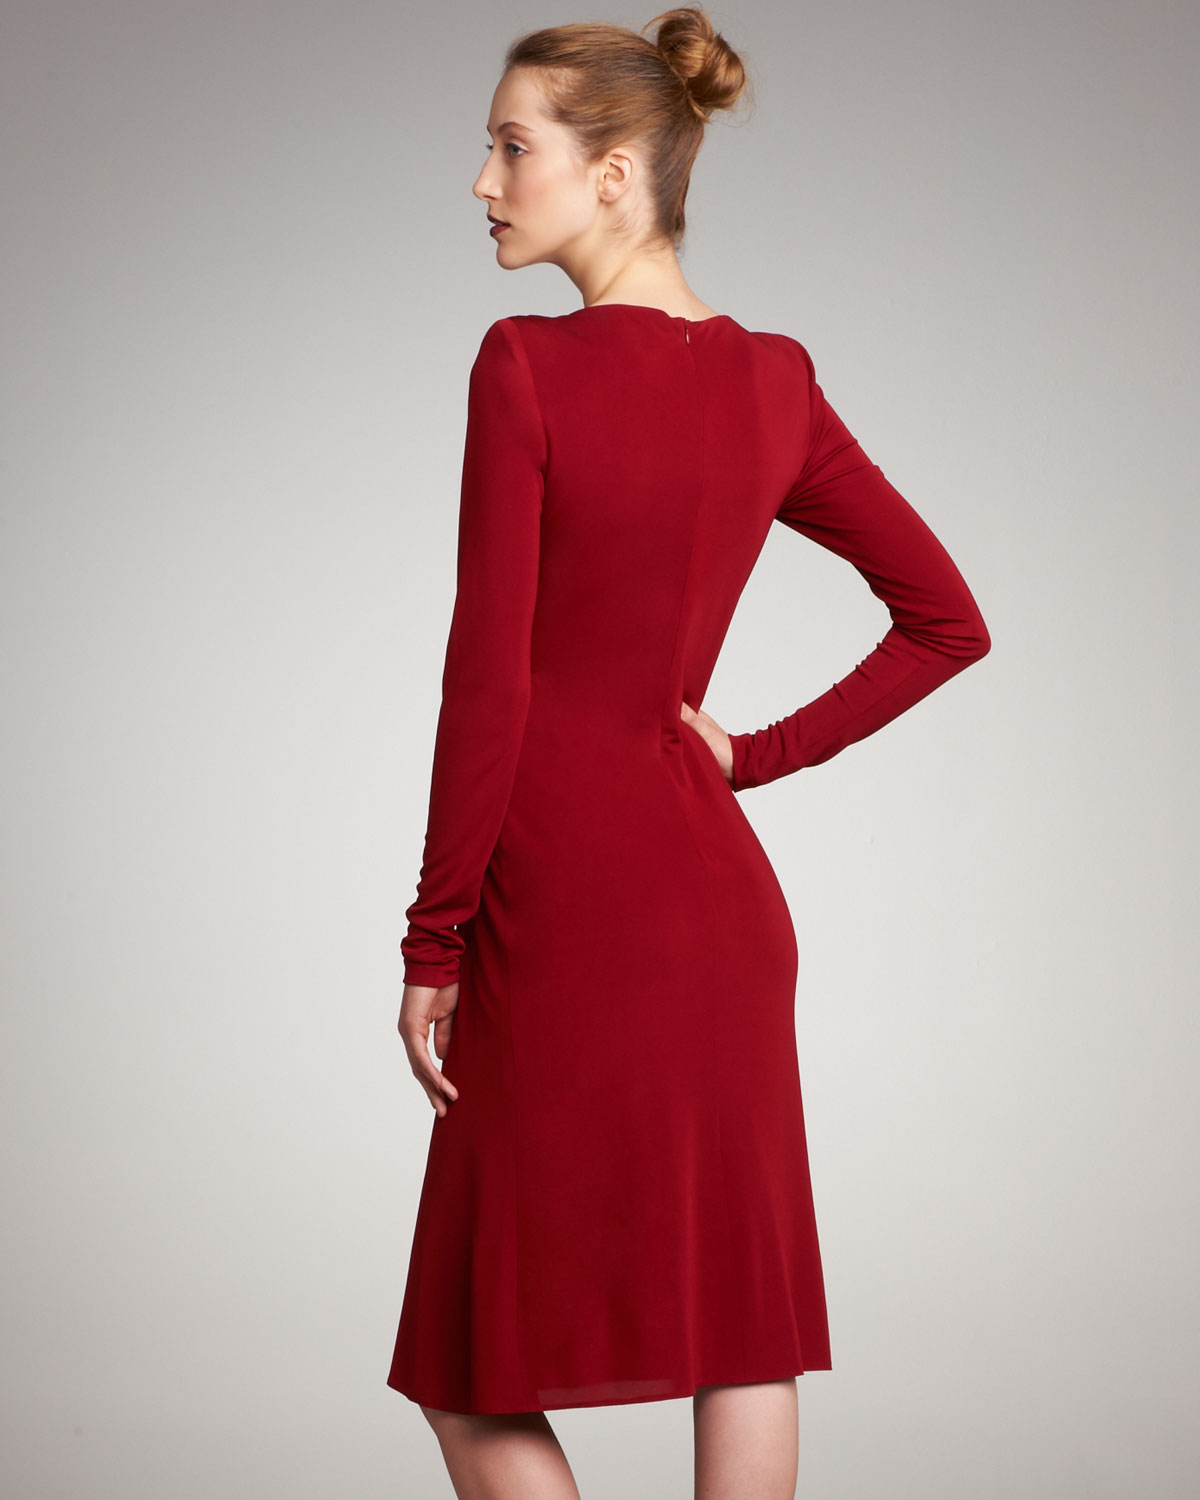 Red jersey cocktail dress